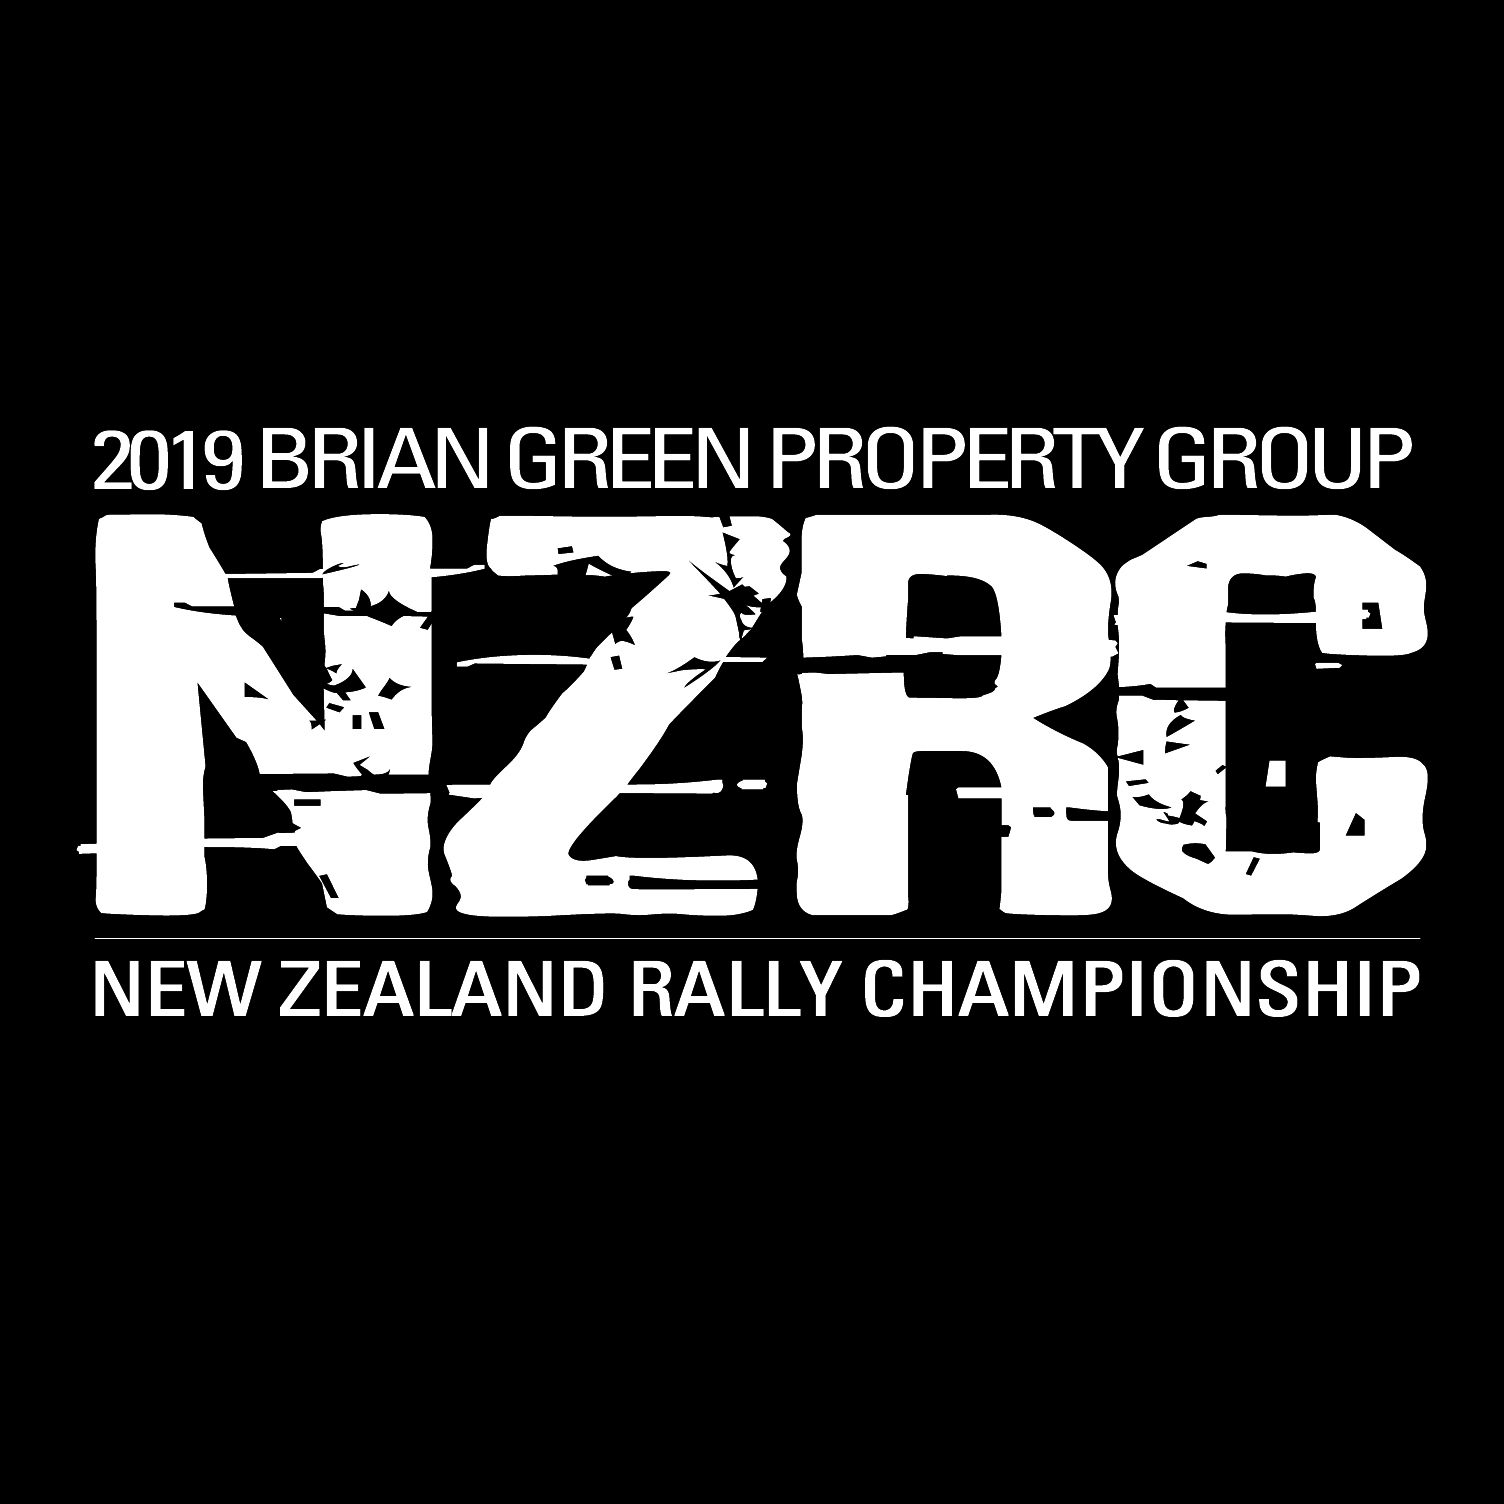 Campbell leads after dramatic opening day at Otago Rally | :: Brian Green Property Group New Zealand Rally Championship ::